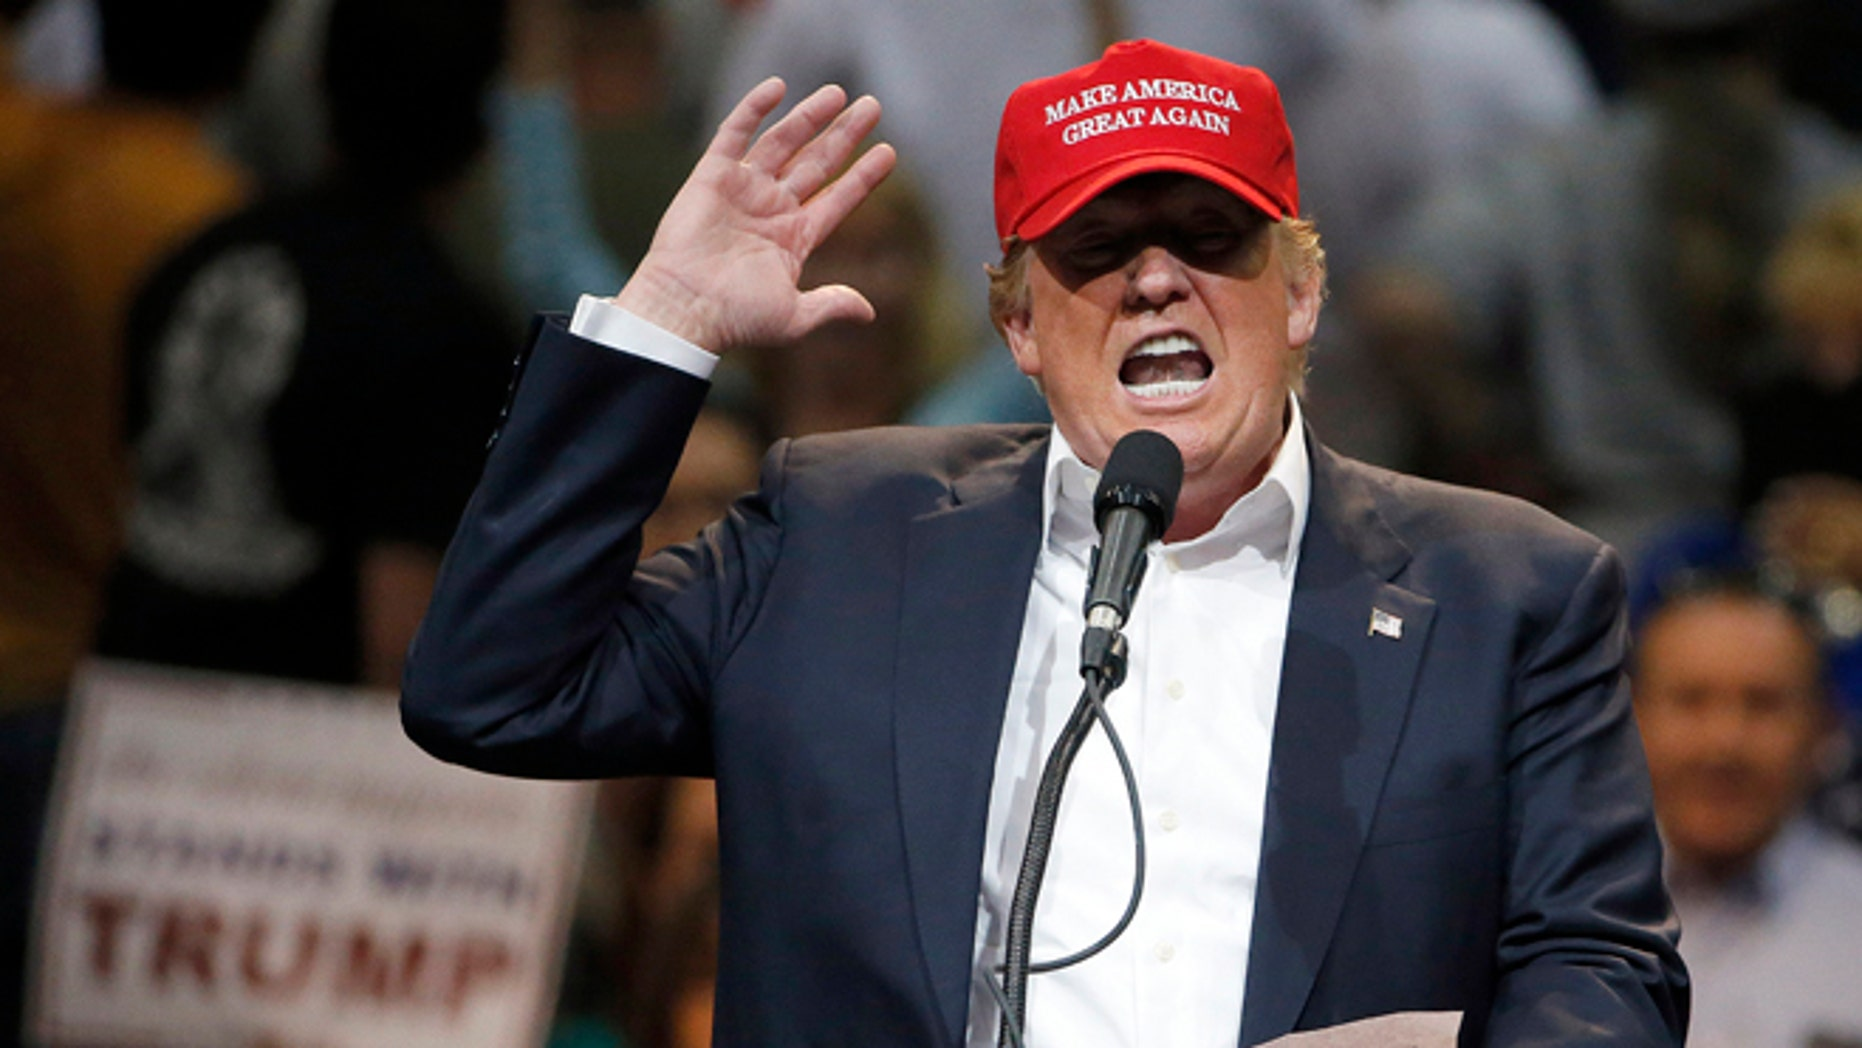 Presidential candidate Donald Trump during a campaign rally in Tucson, Ariz., on March 19, 2016.